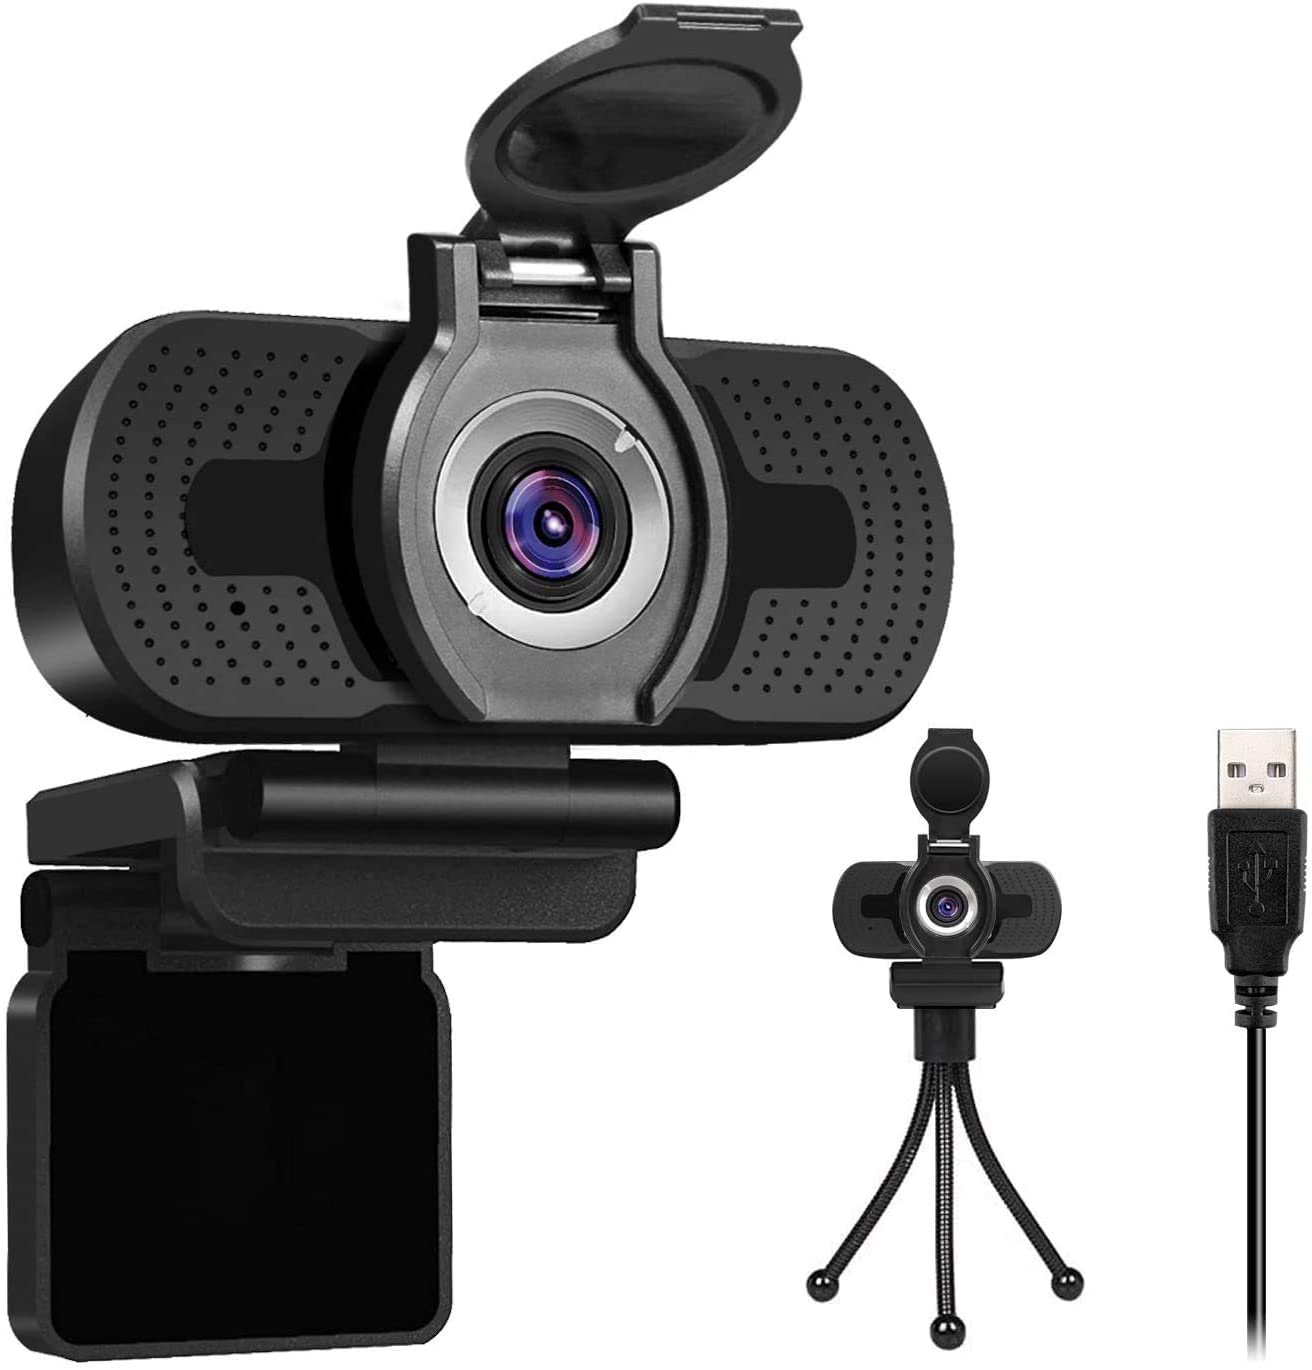 1080P Full HD Webcam with Webcam Cover, W2